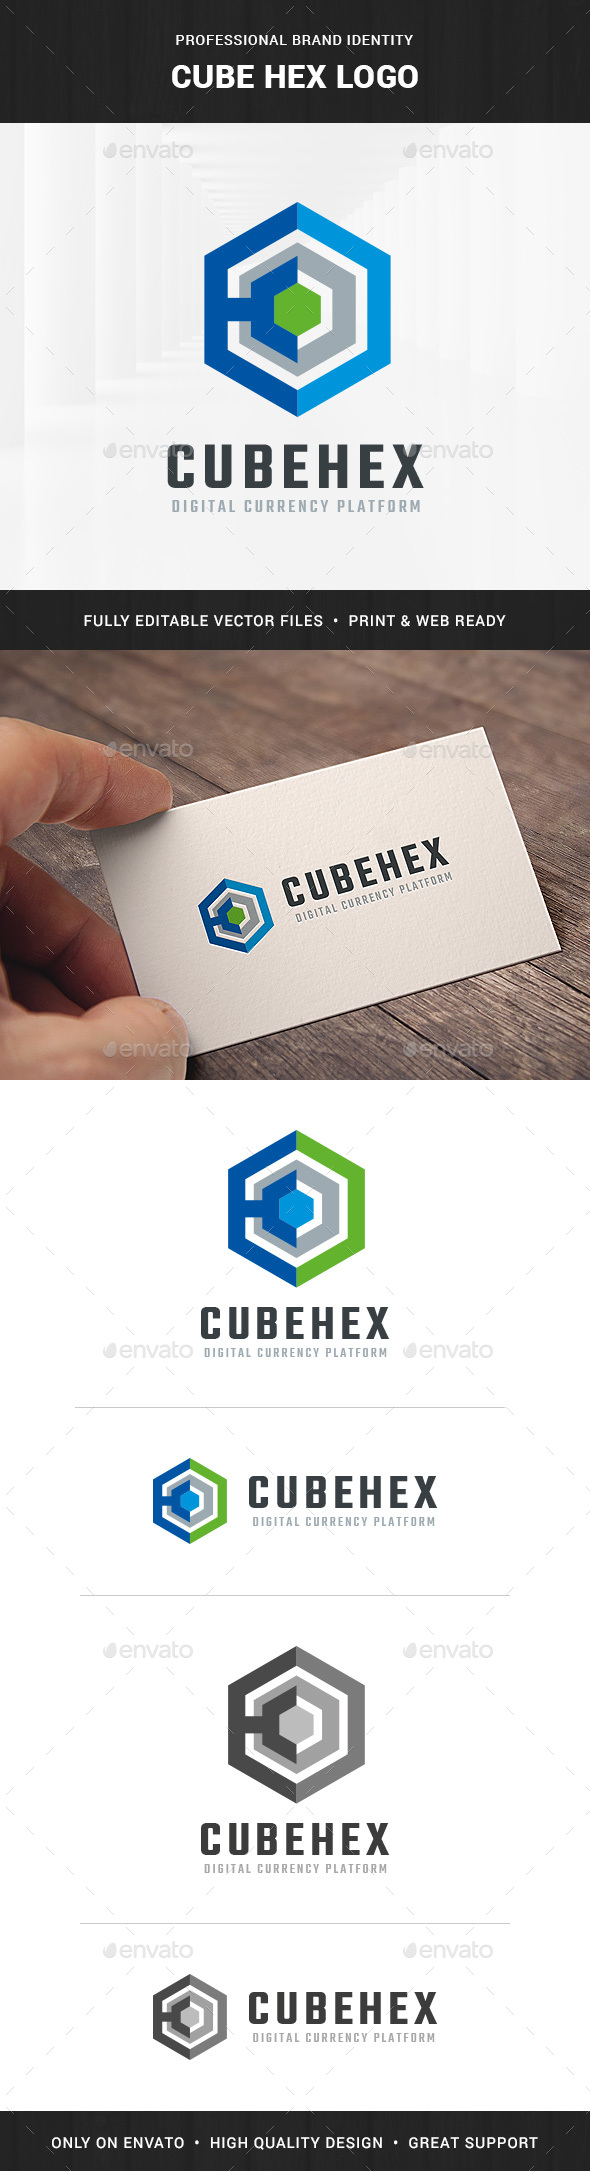 Cube Hex Logo Template